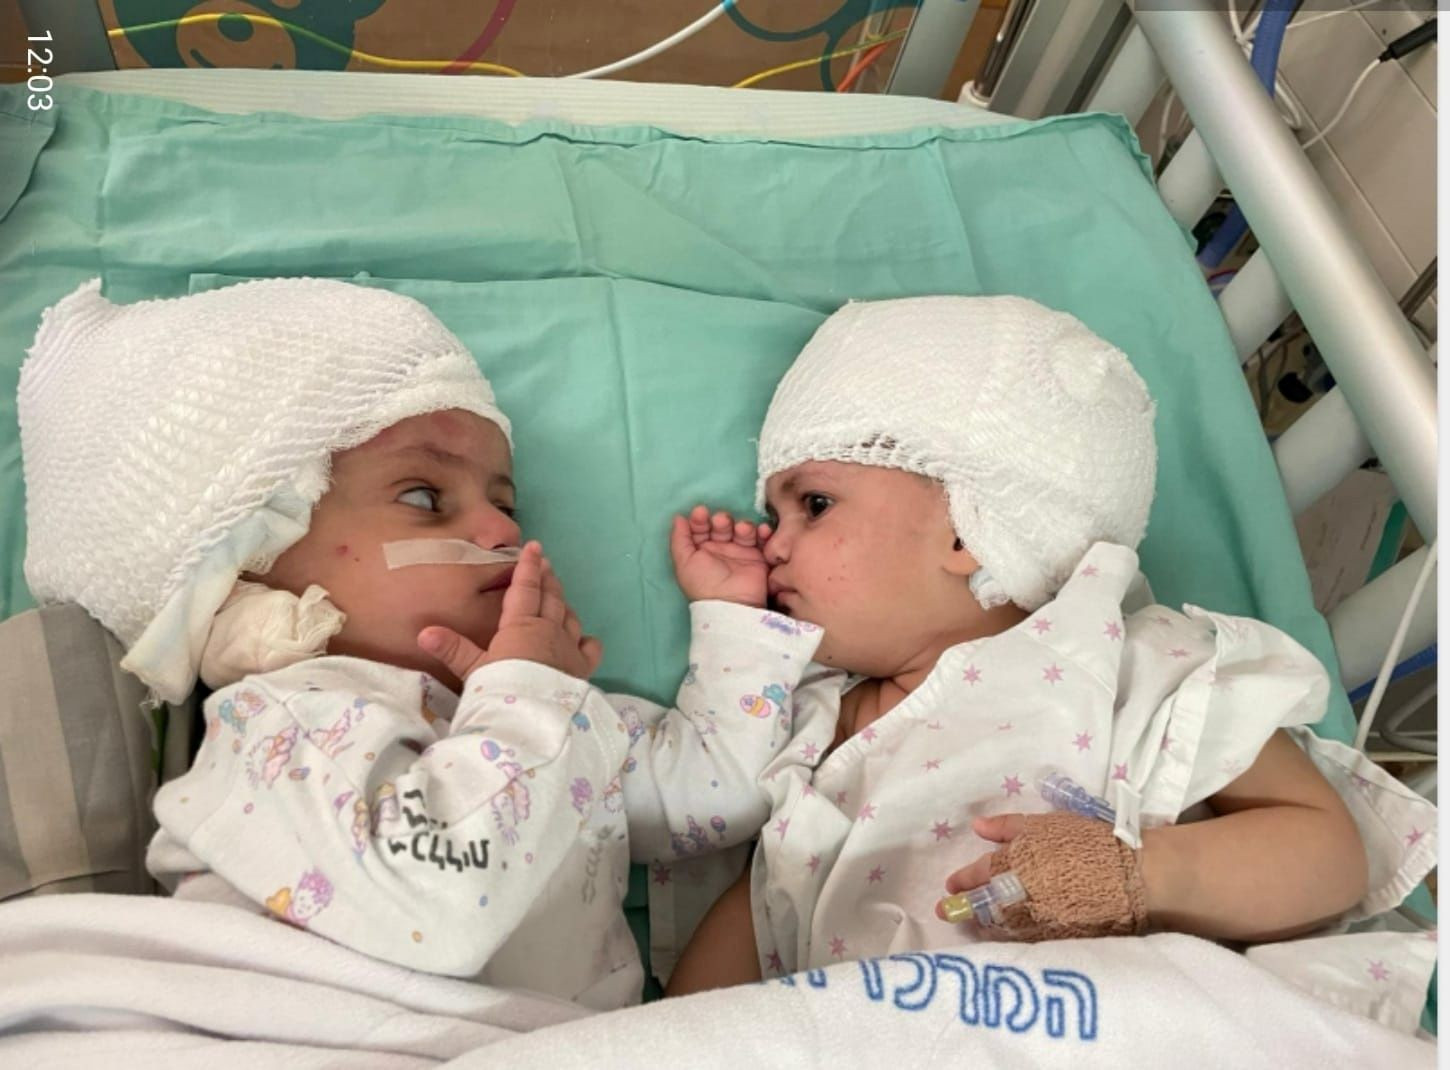 Israeli twins born conjoined back-to-back, finally see each other for the first time after surgery (photos)